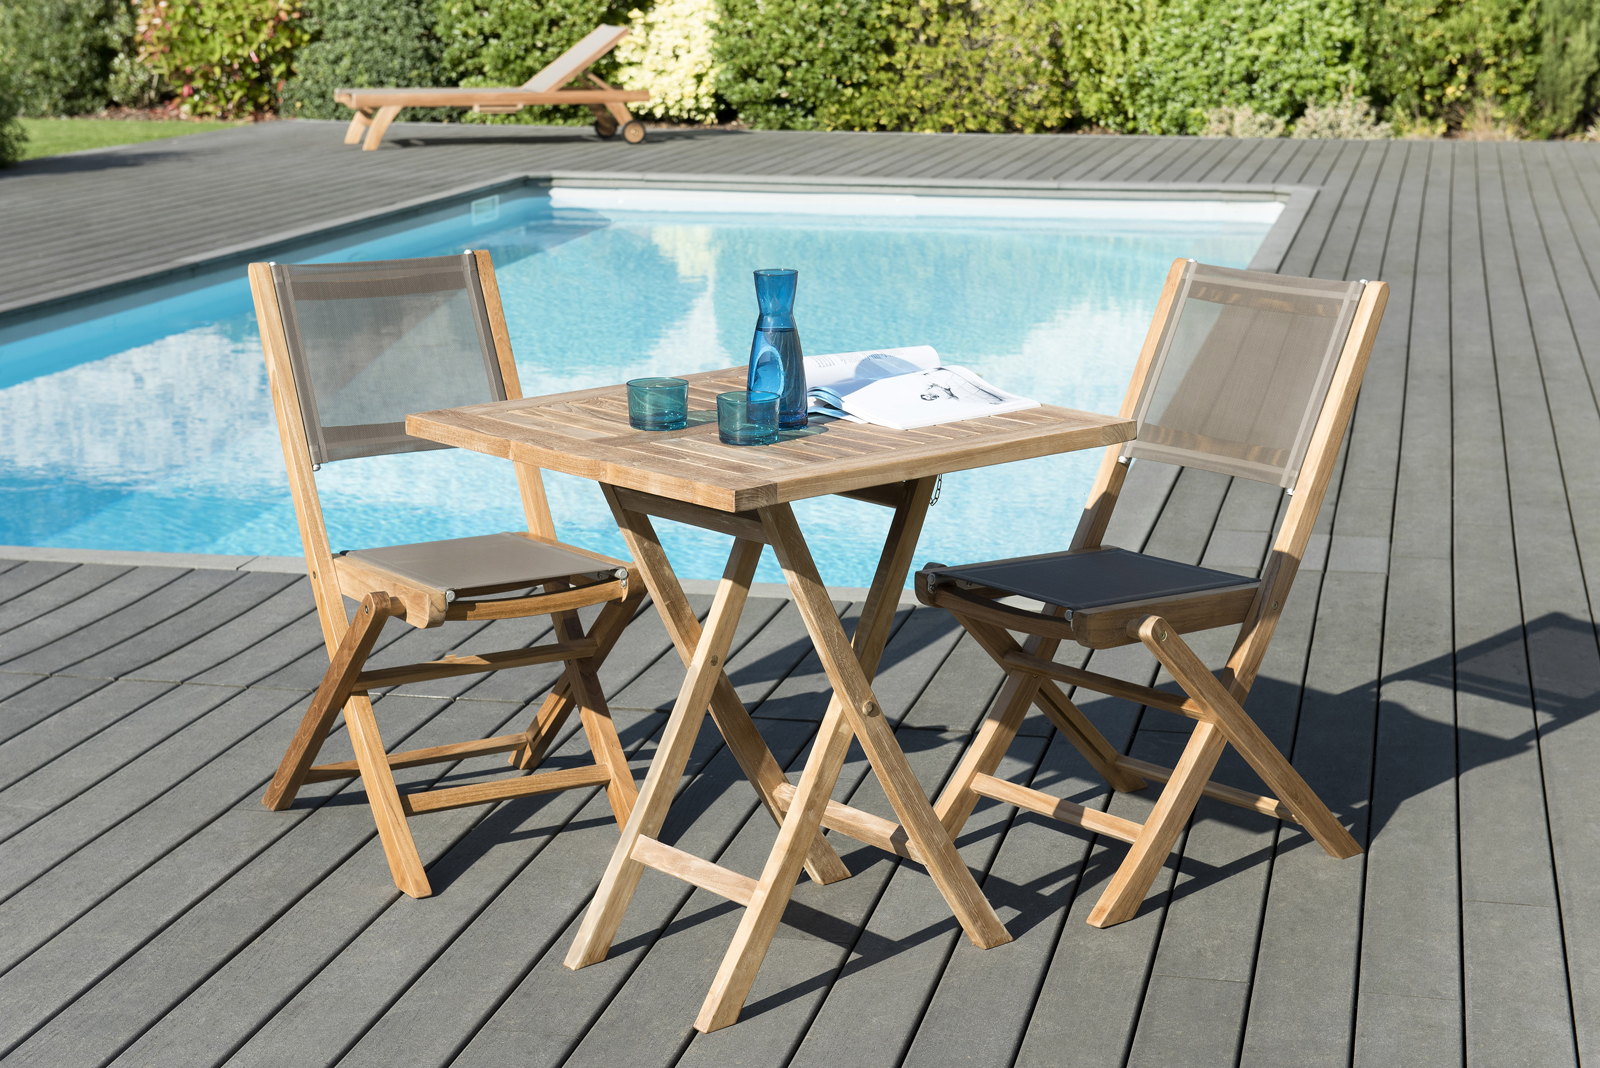 Salon de Jardin Teck Table carrée 70x70 + 2 chaises pliantes SUMMER ...